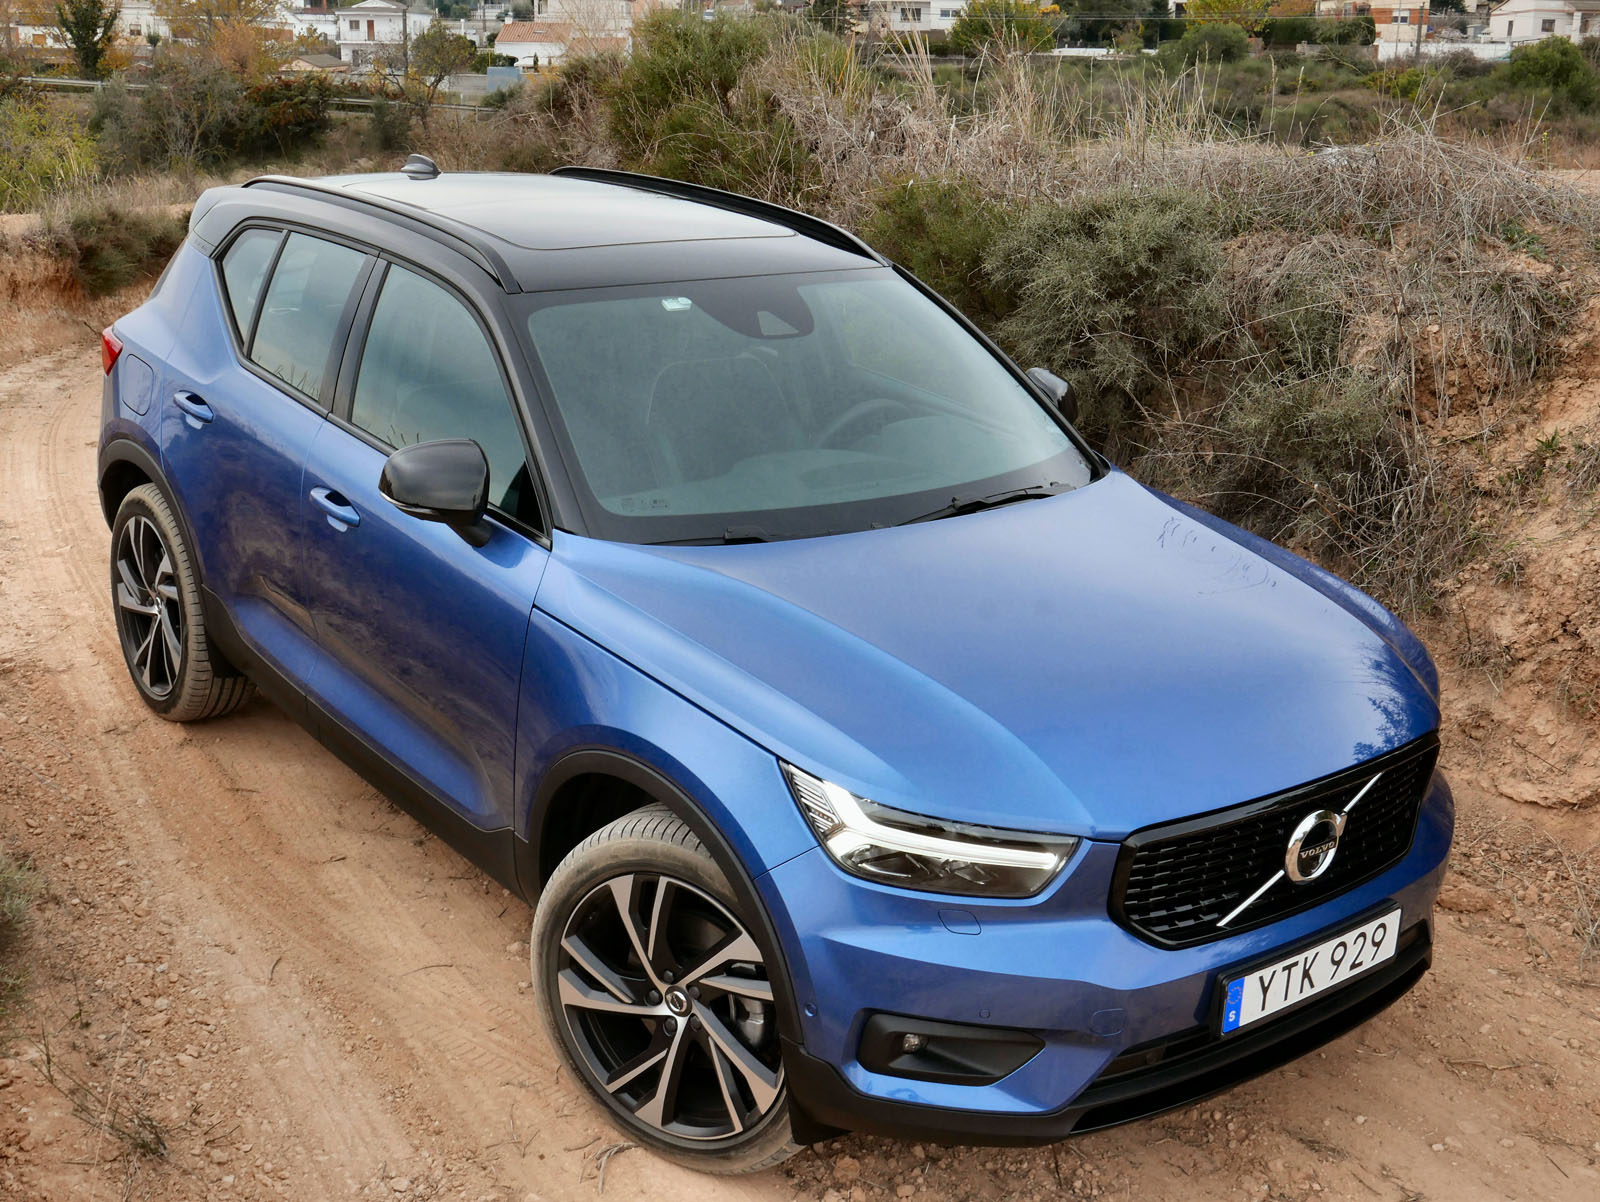 Uber Fare Review >> 2019 Volvo XC40 Review and First Drive - AutoGuide.com